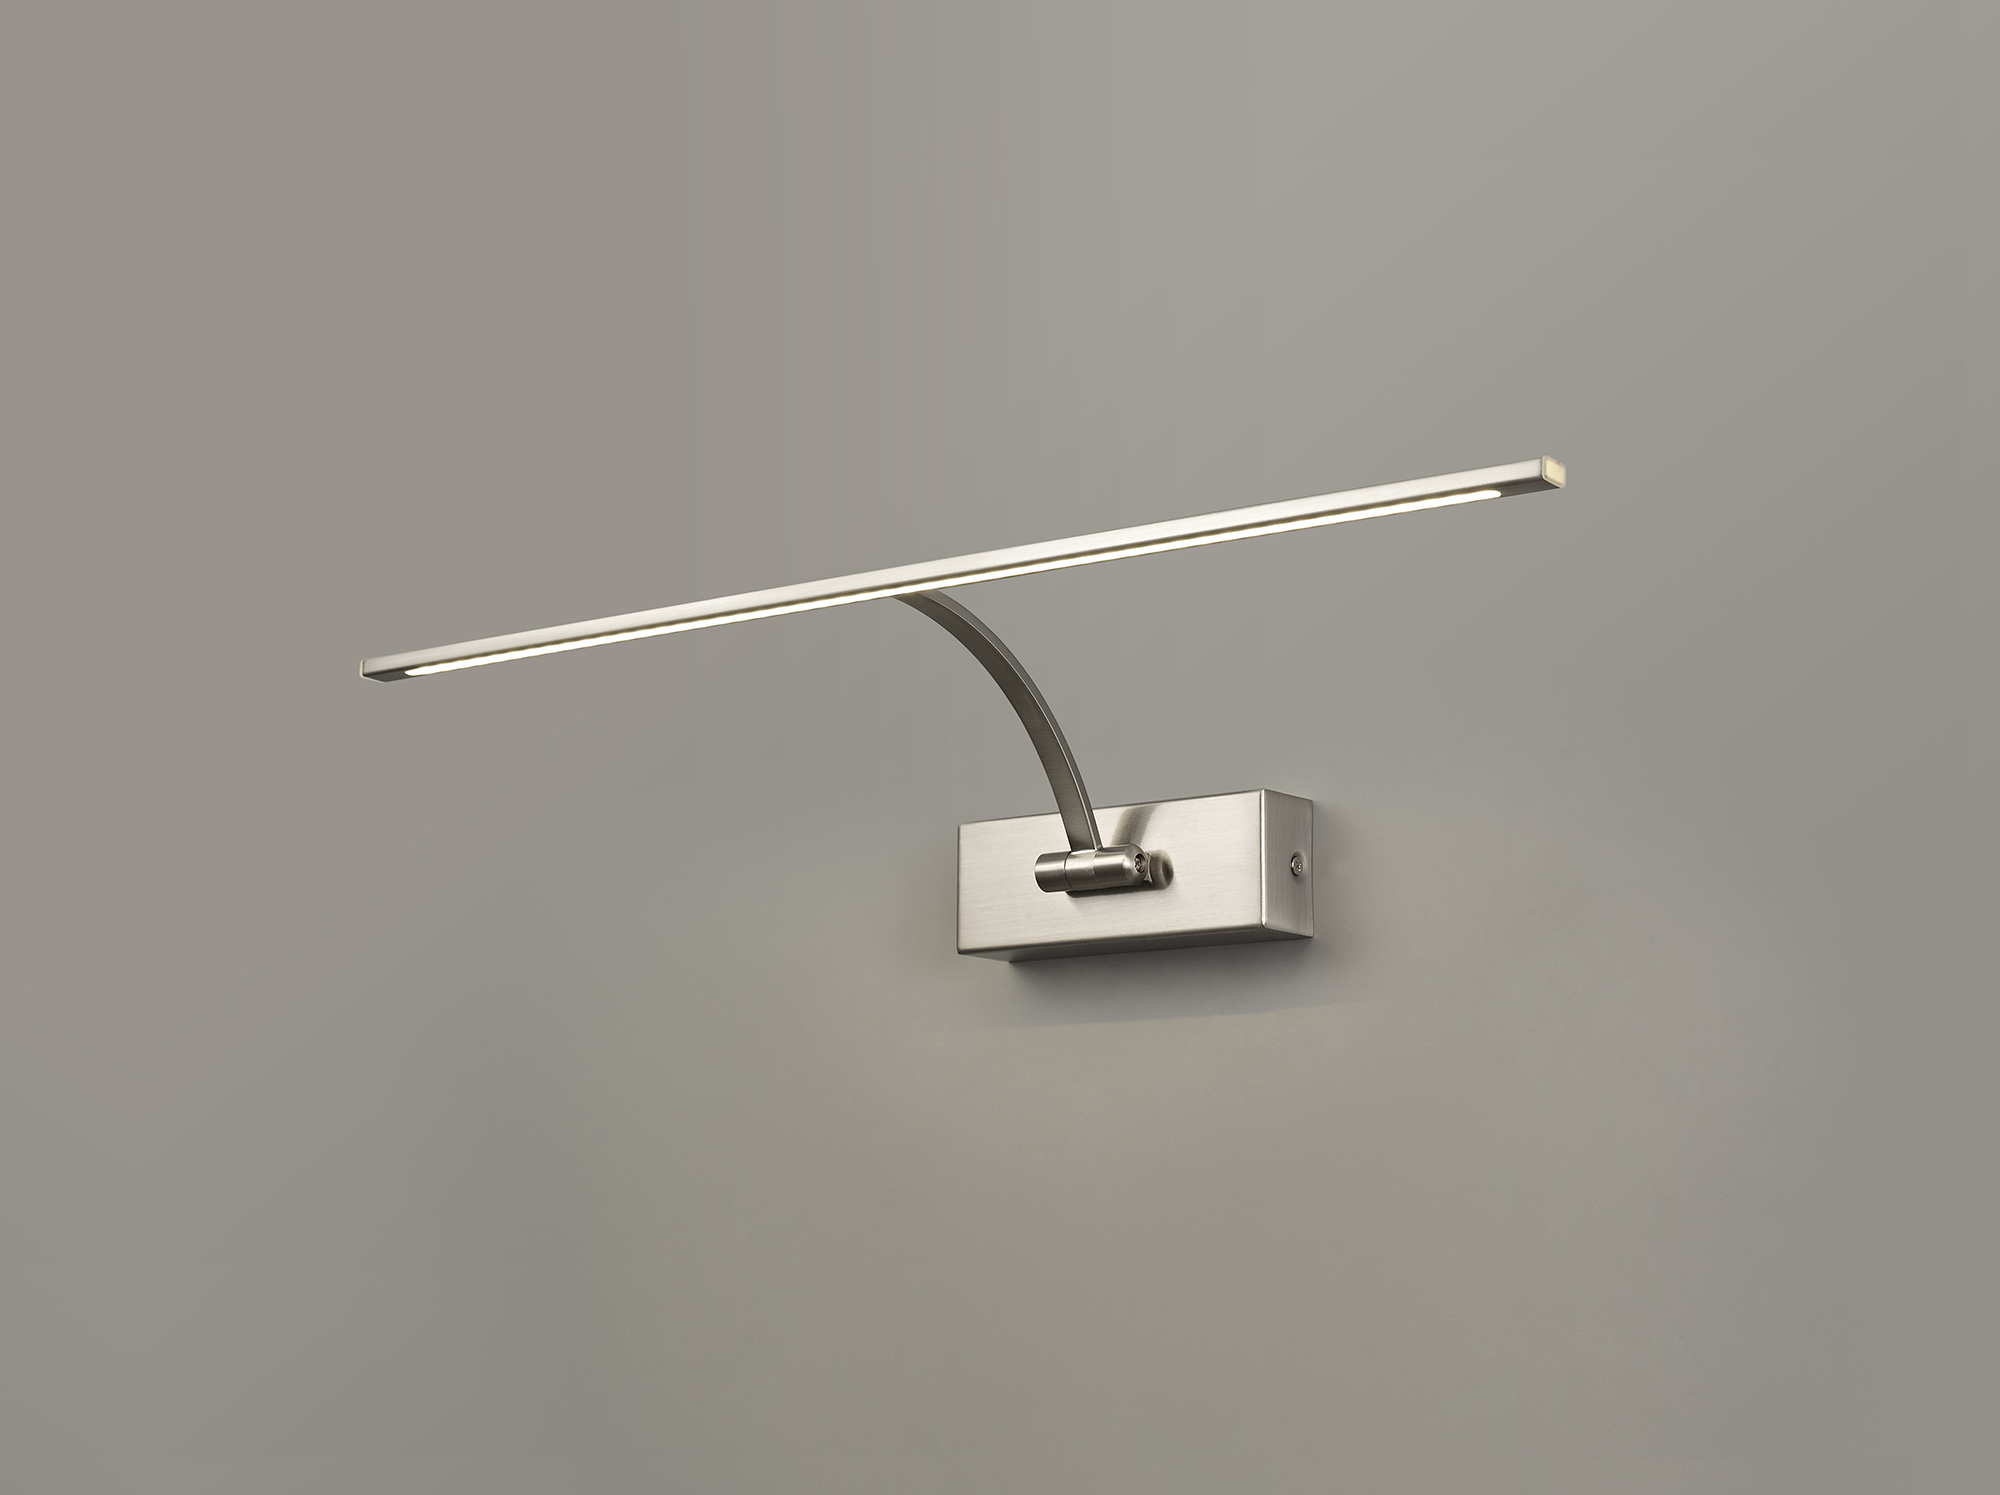 Large 1 Arm Wall Lamp/Picture Light, 1 x 10W LED, 3000K, 850lm, 3yrs Warranty